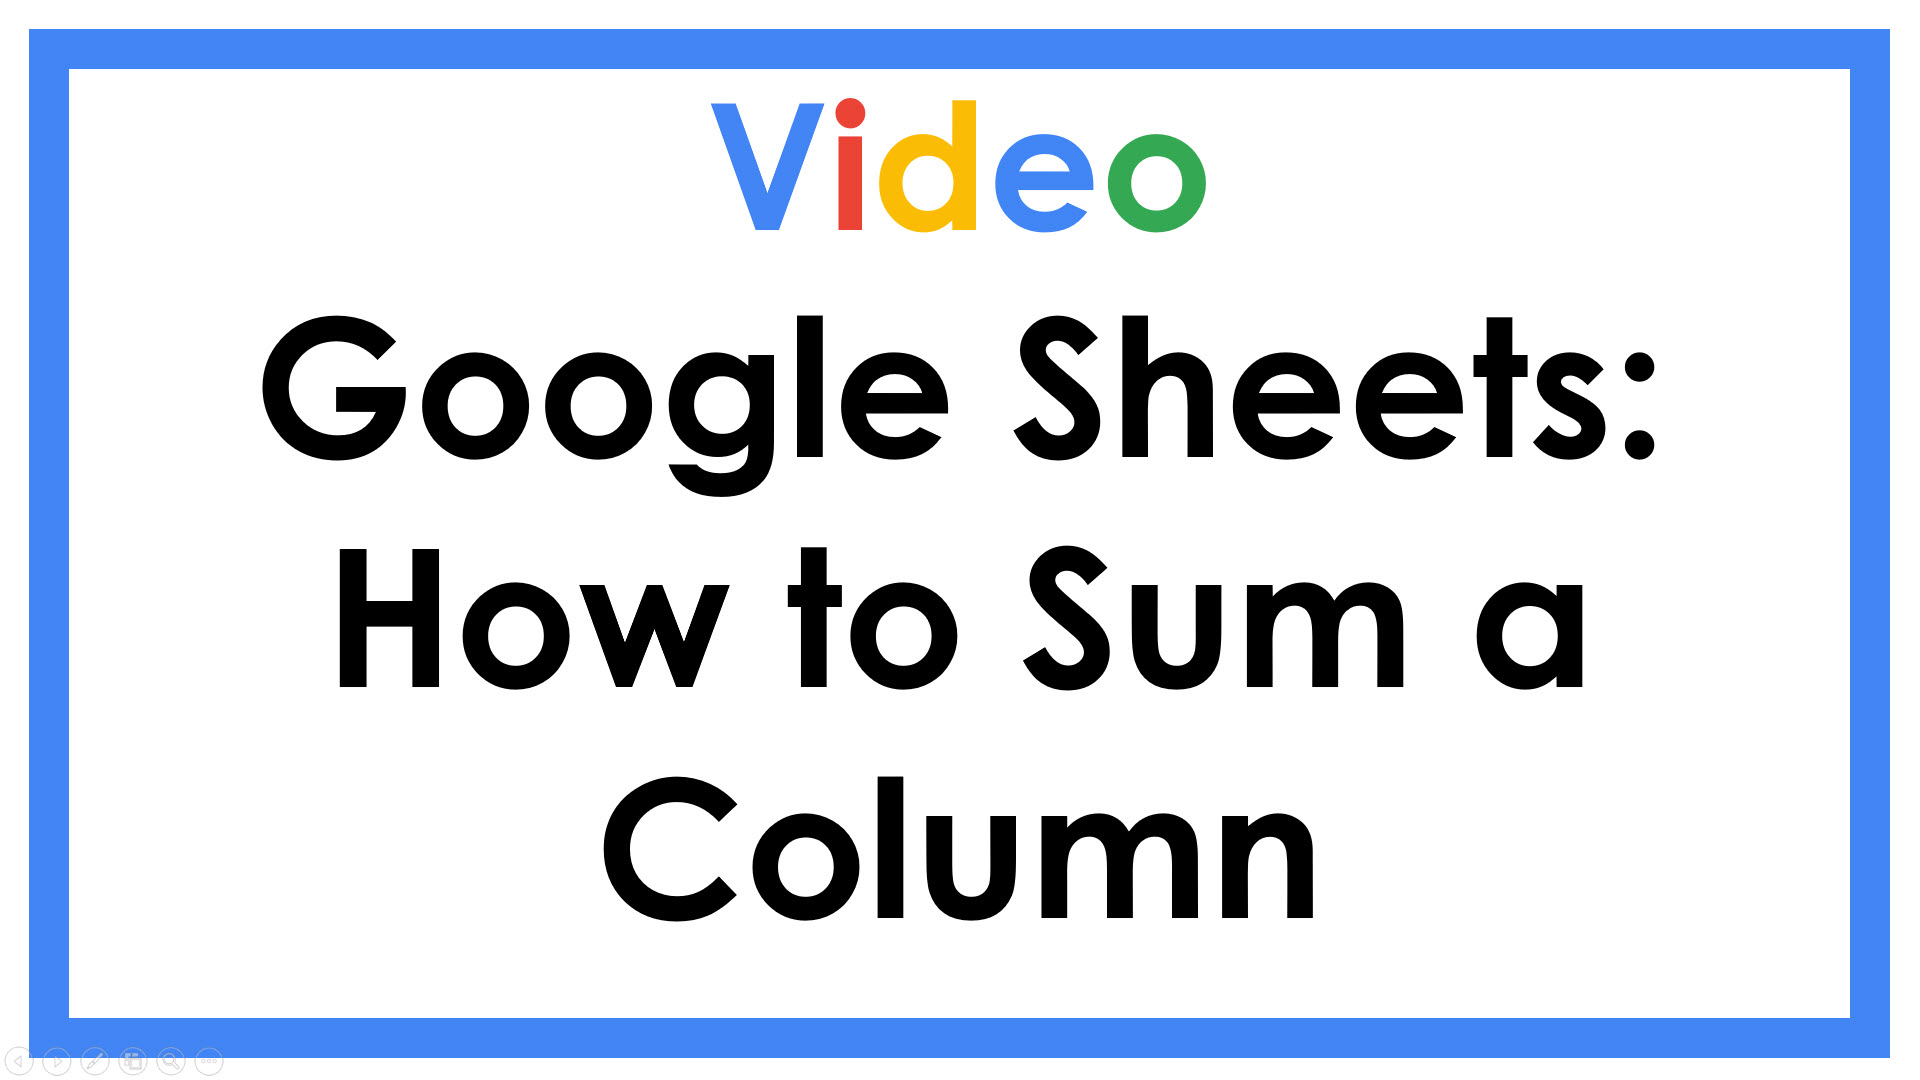 Google Sheets: How to Sum a Column